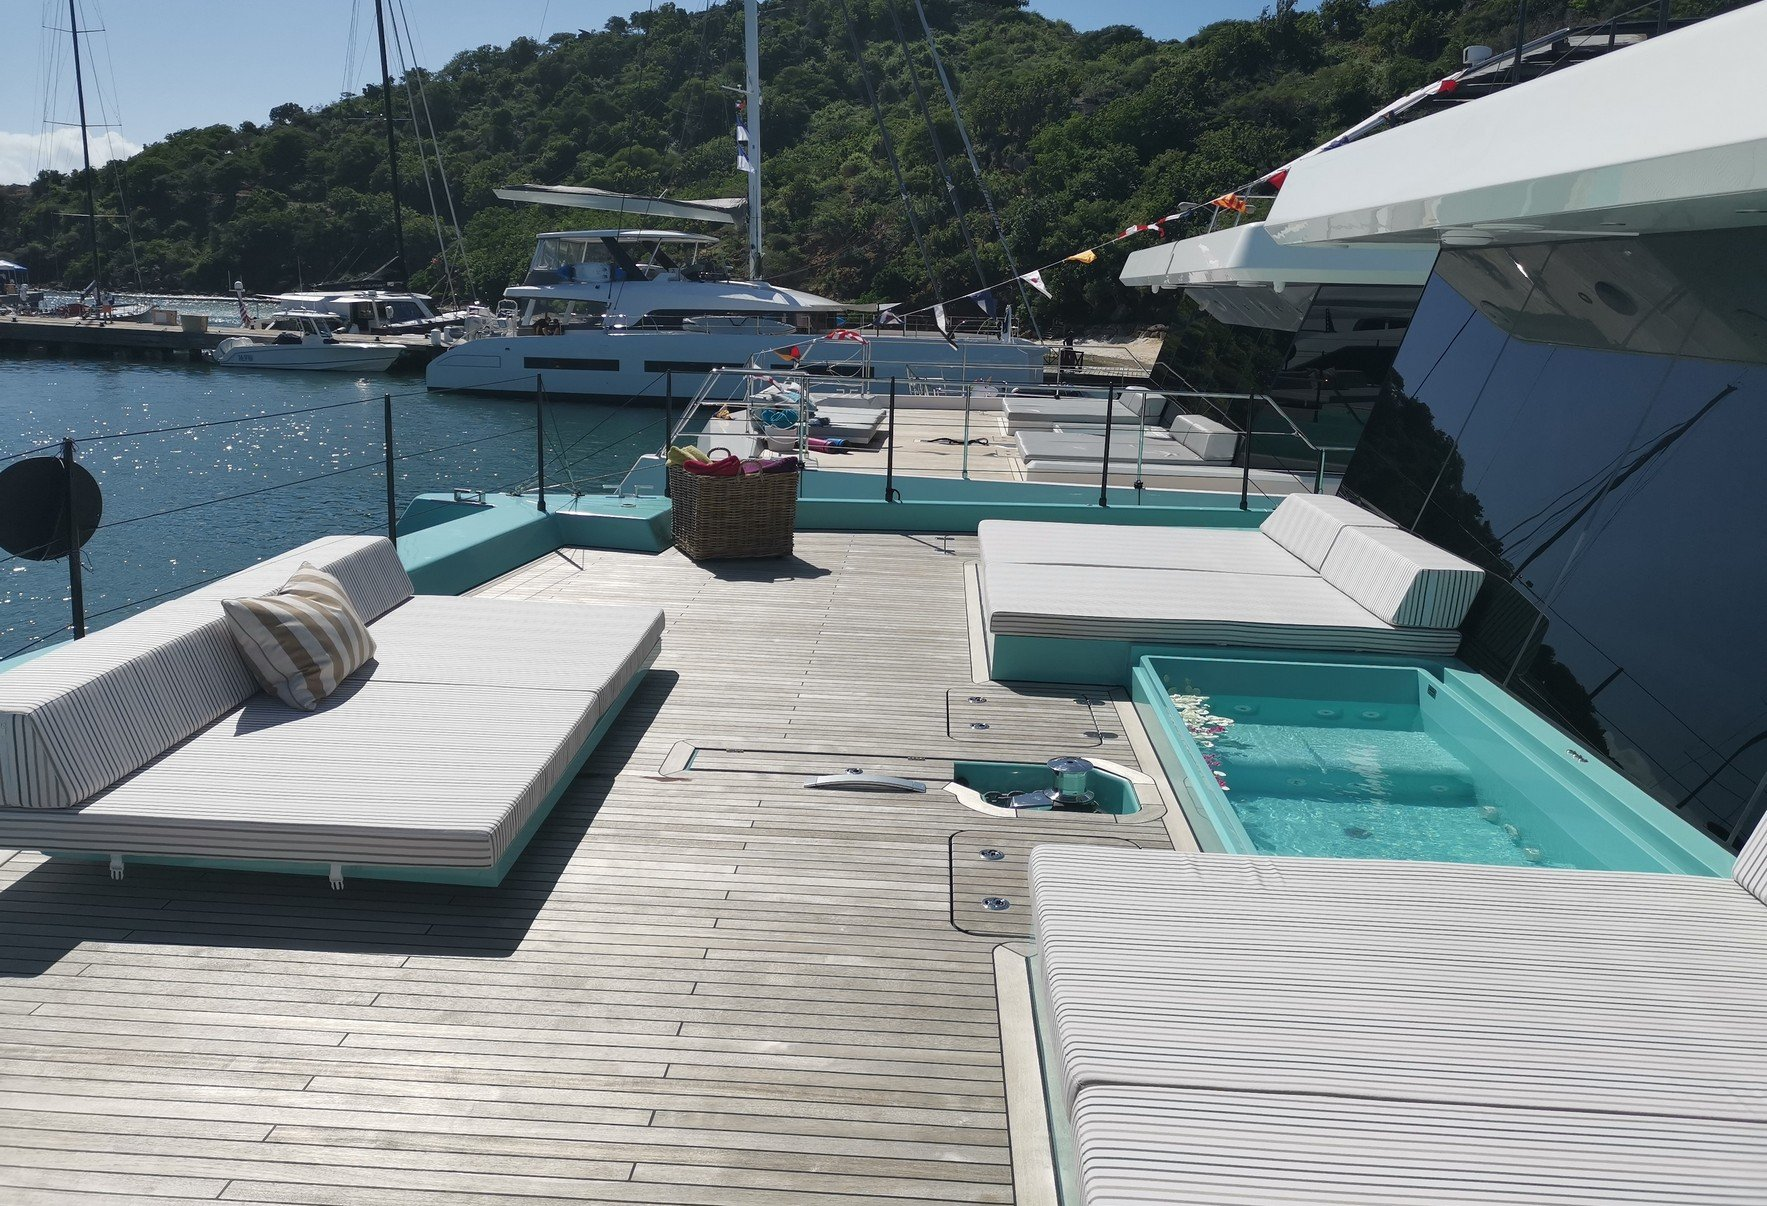 CHRISTINA TOO Foredeck Showing Jacuzzi